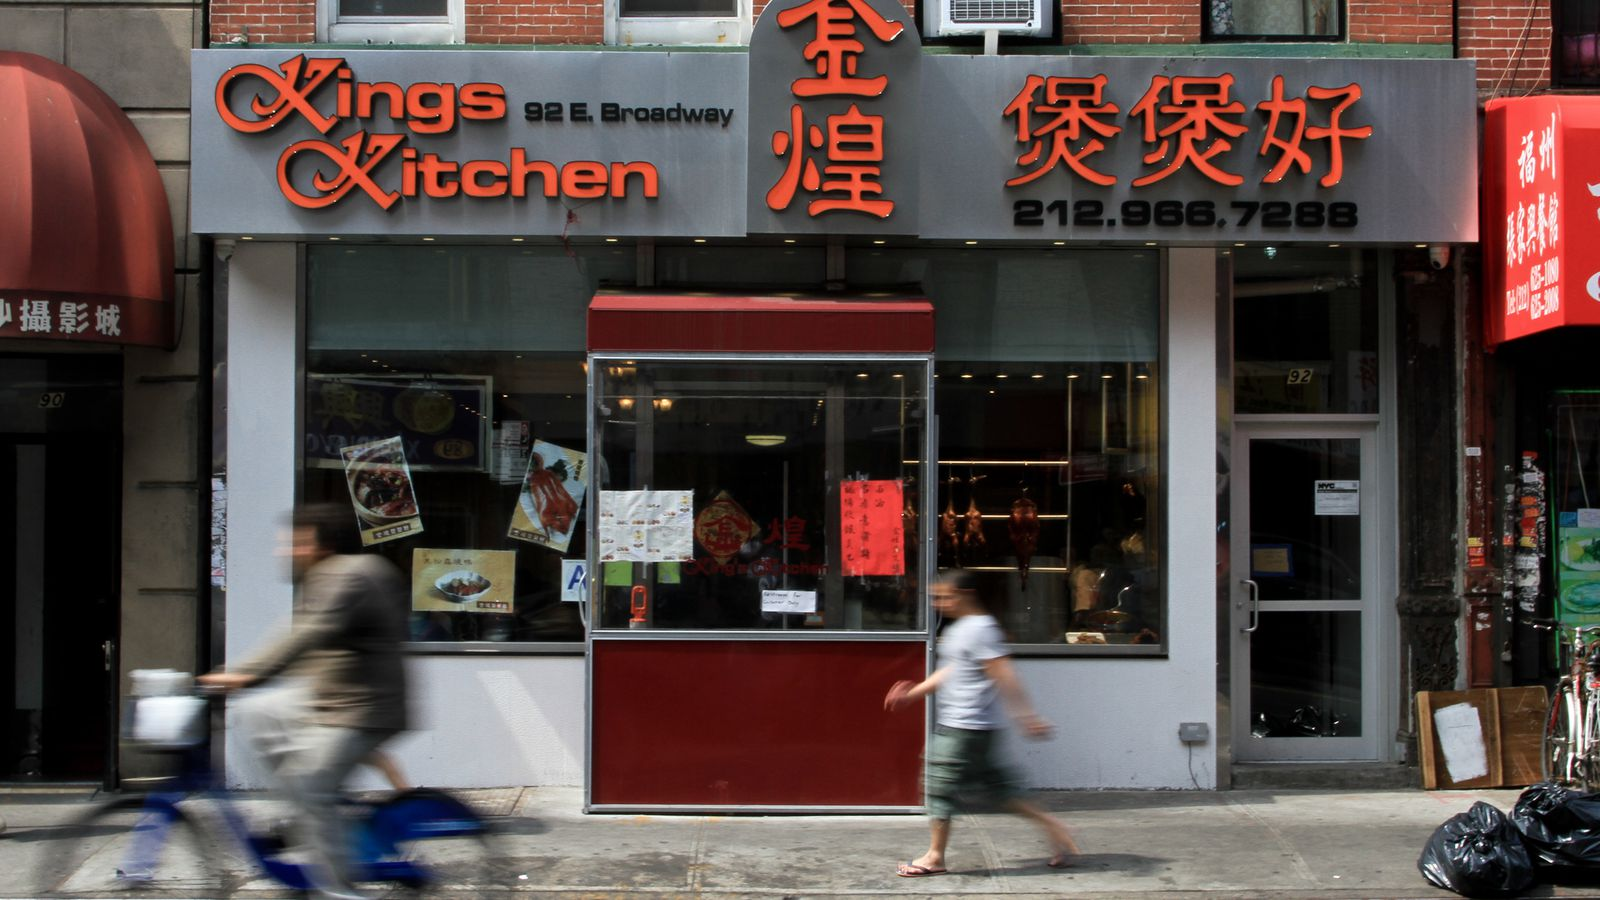 King S Kitchen East Broadway